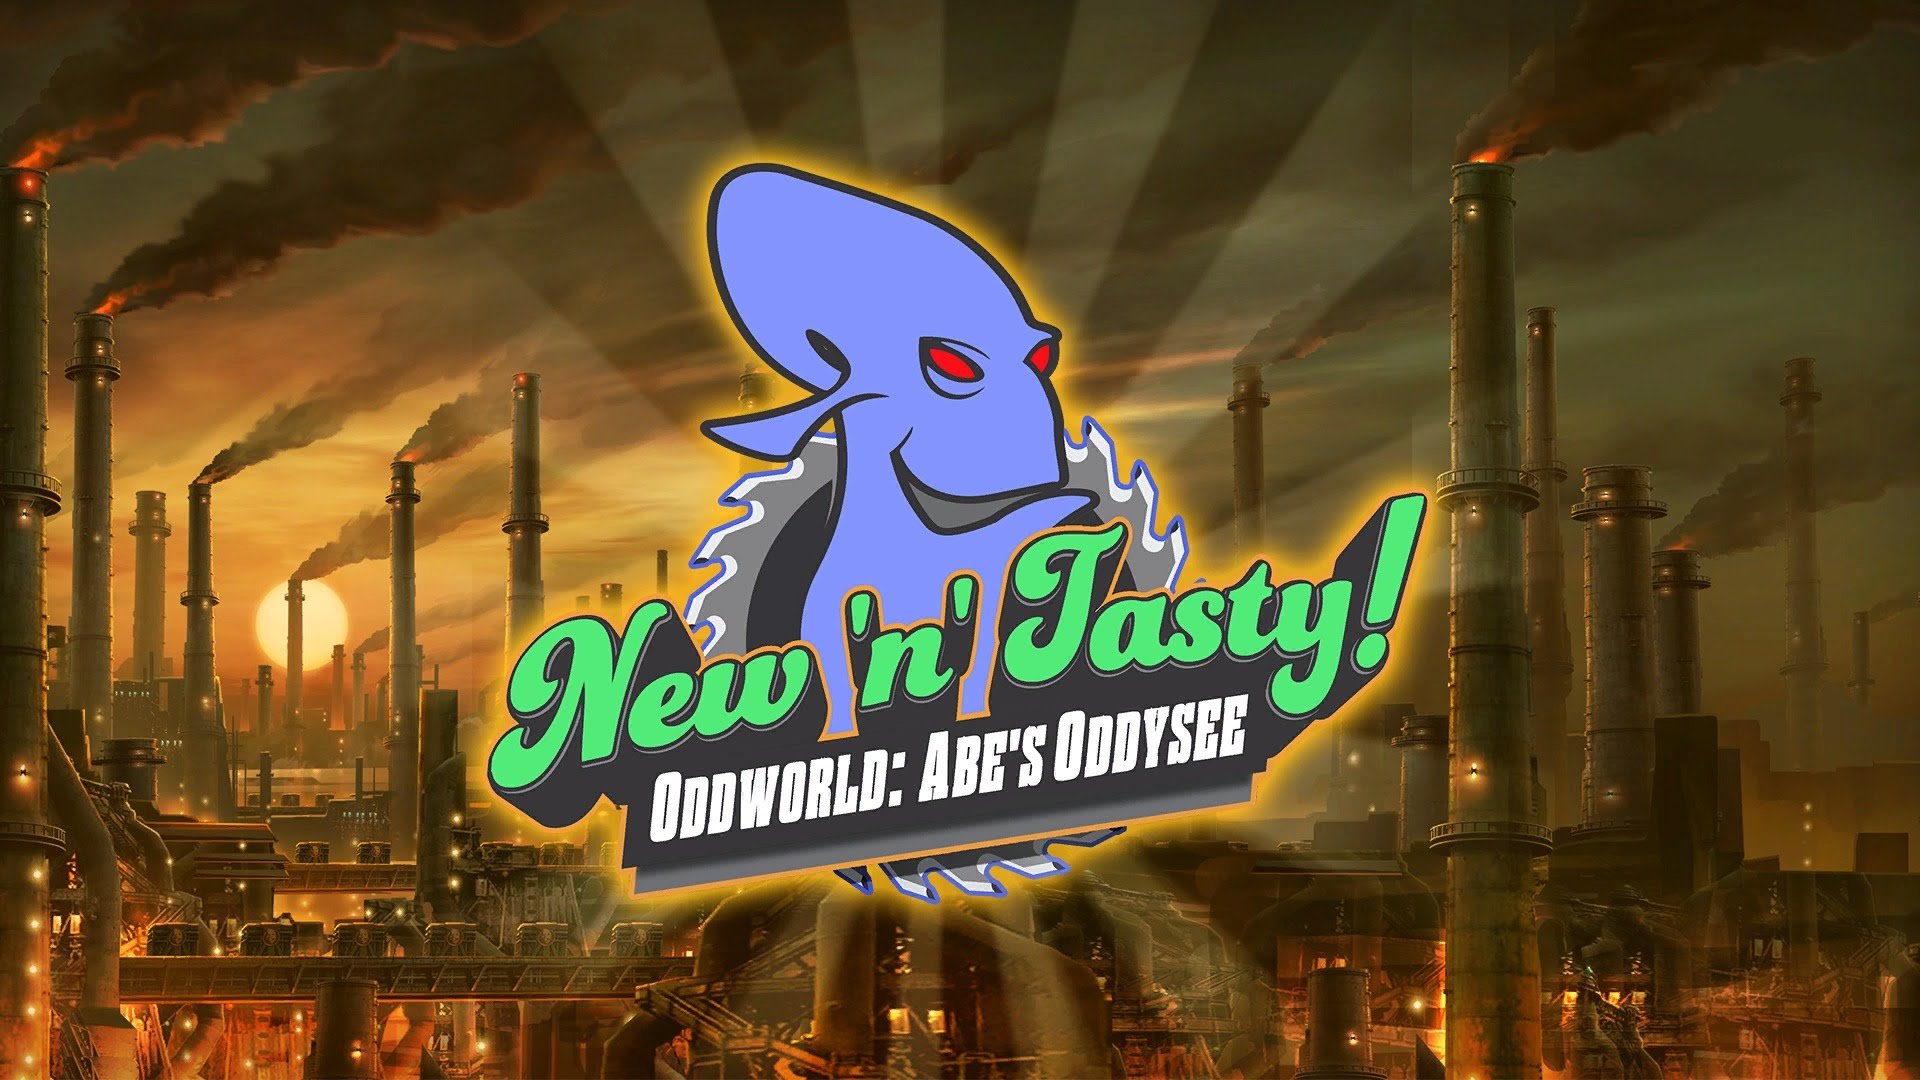 oddworld-new-n-tasty-rev-top-pn